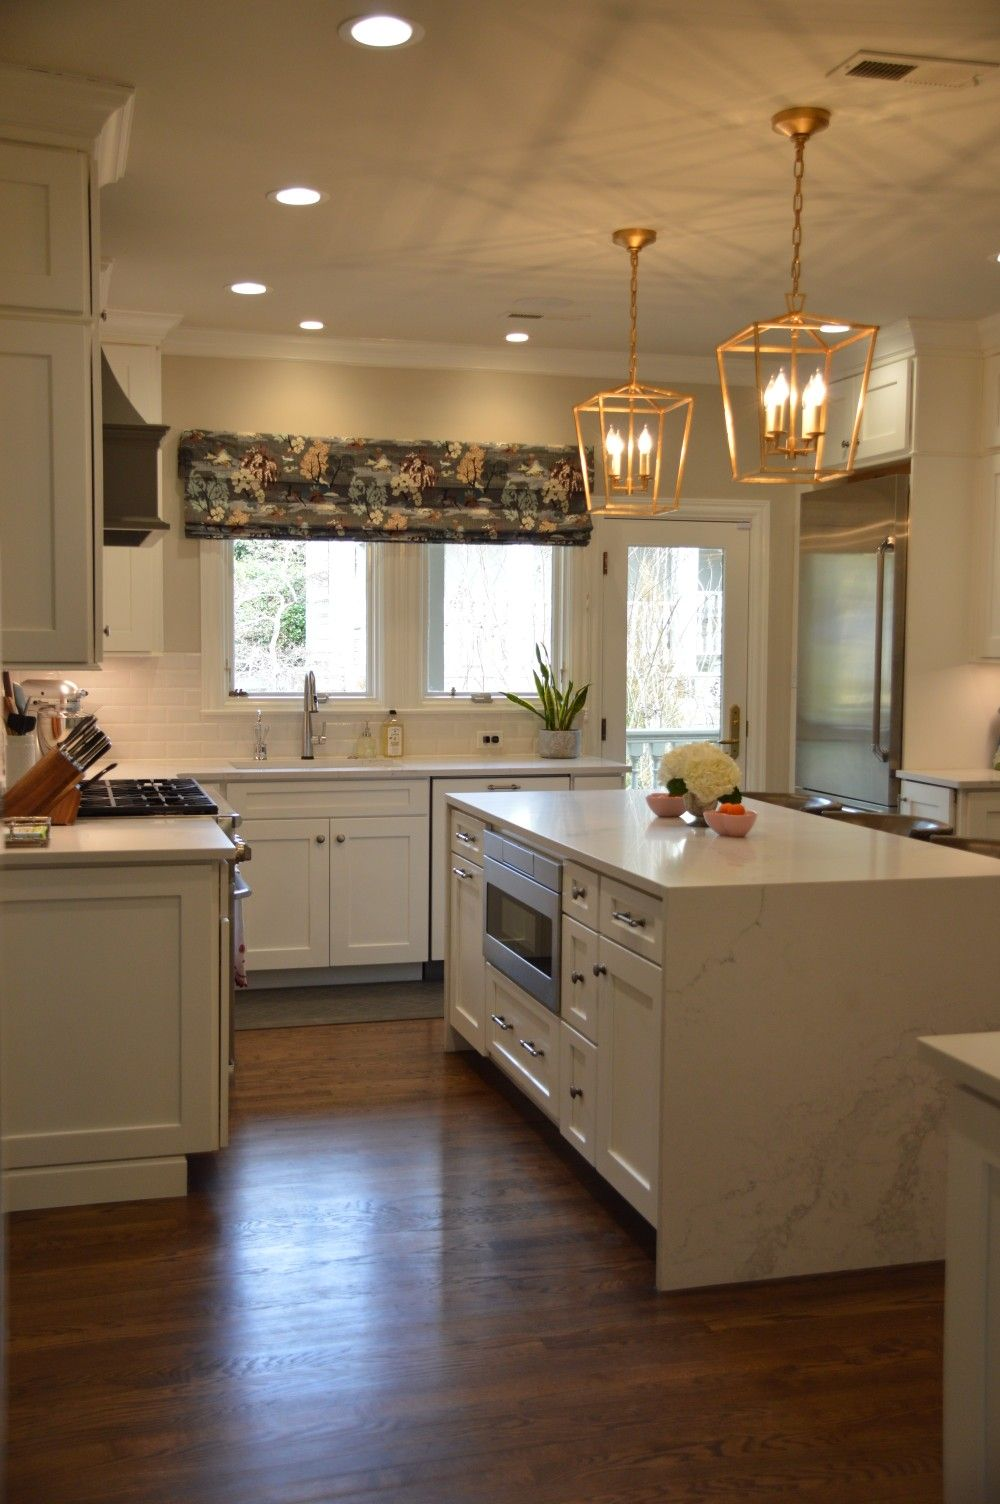 Kitchen Kith Kitchens Cabinetry Homestead Ii Maple Bright White Paint Cabinets Perimeter With Creekstone Finish On H Kitchen Sale Paint Cabinets White Kitchen